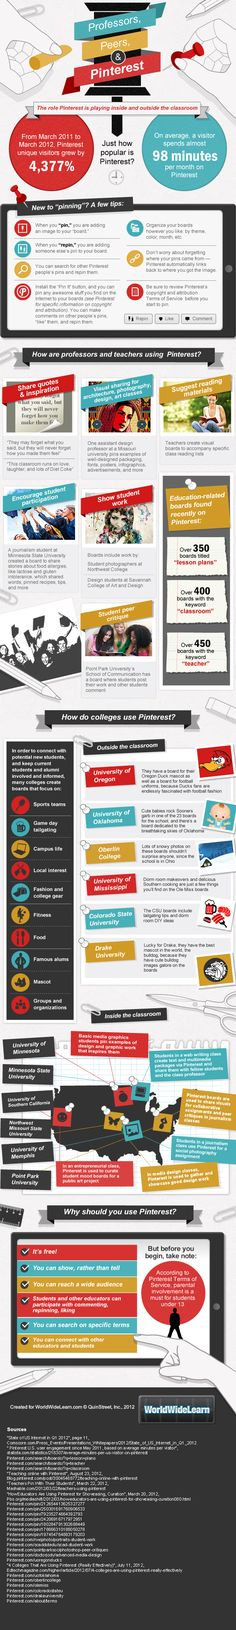 Professors, Peers, & #Pinterest - #infographic #education